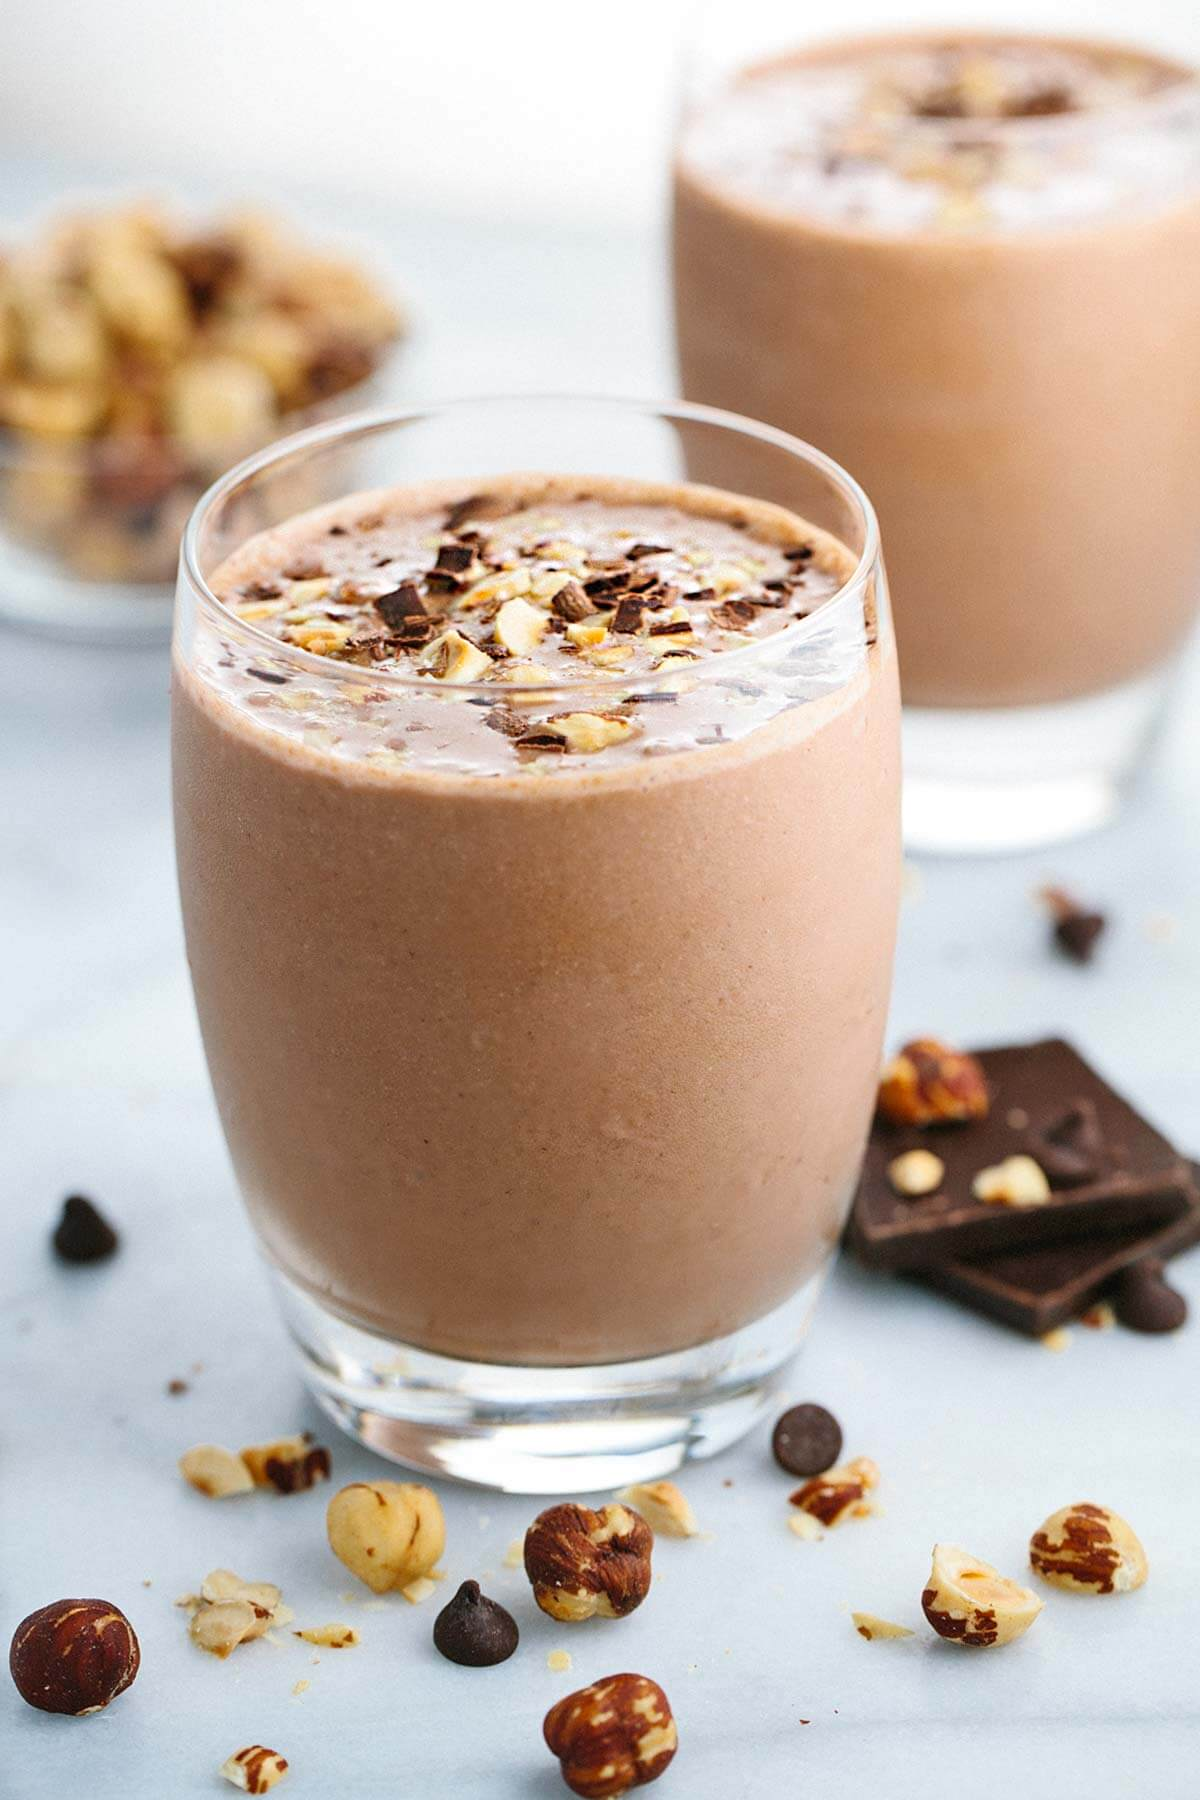 Chocolate Hazelnut Smoothie with Bananas - This creamy blended drink recipe is the perfect way to indulge without the guilt. Roasted hazelnuts, cocoa, and banana make each sip satisfying! | jessicagavin.com